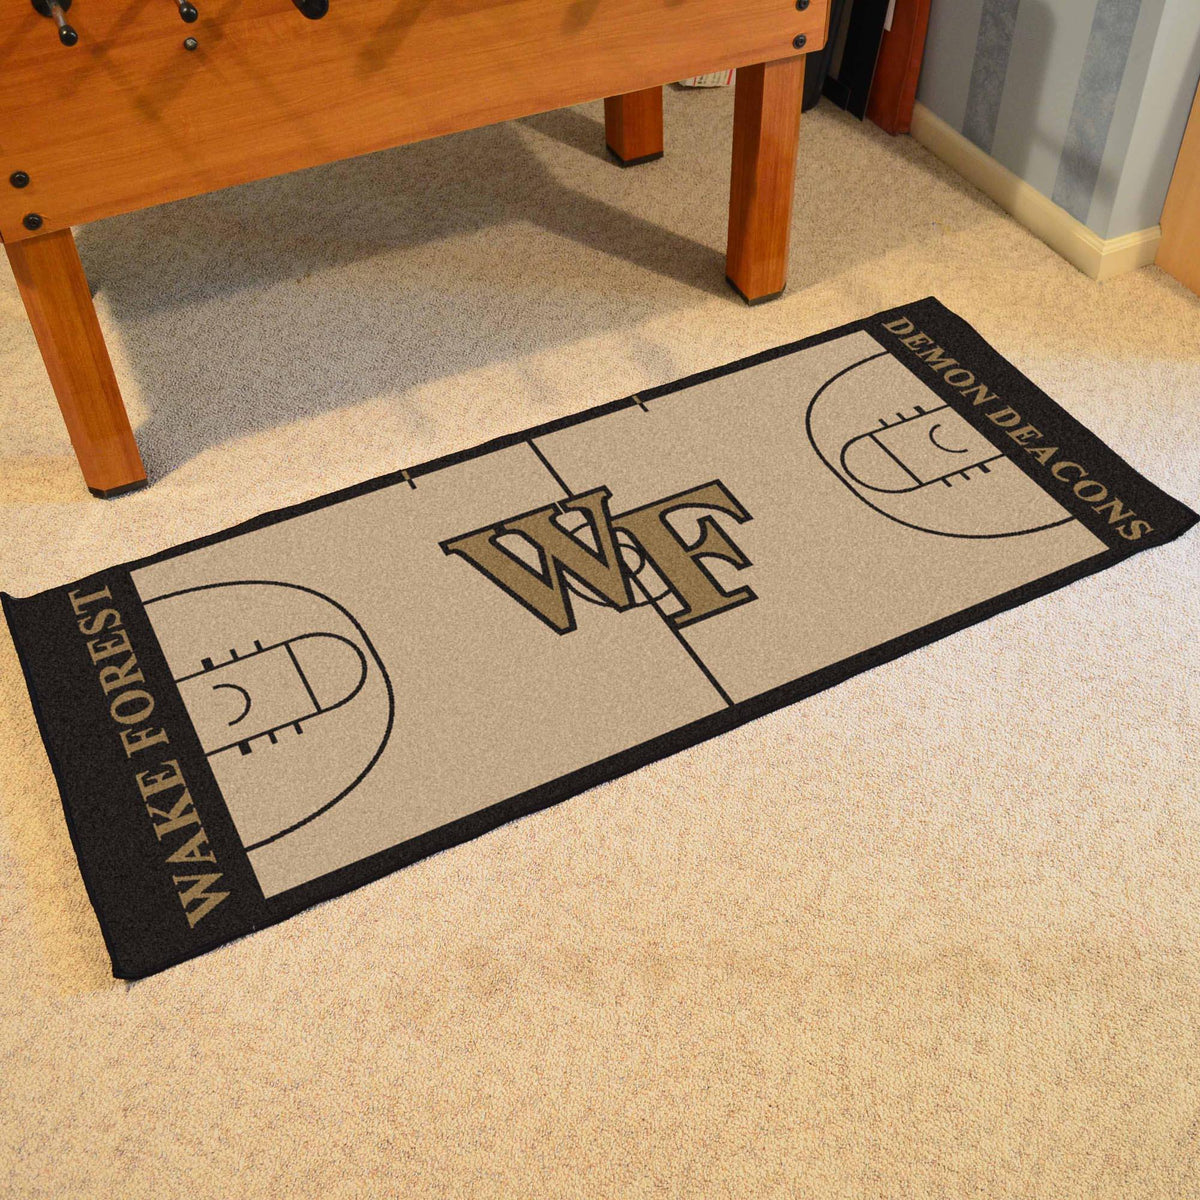 Collegiate - NCAA Basketball Runner Collegiate Mats, Rectangular Mats, NCAA Basketball Runner, Collegiate, Home Fan Mats Wake Forest